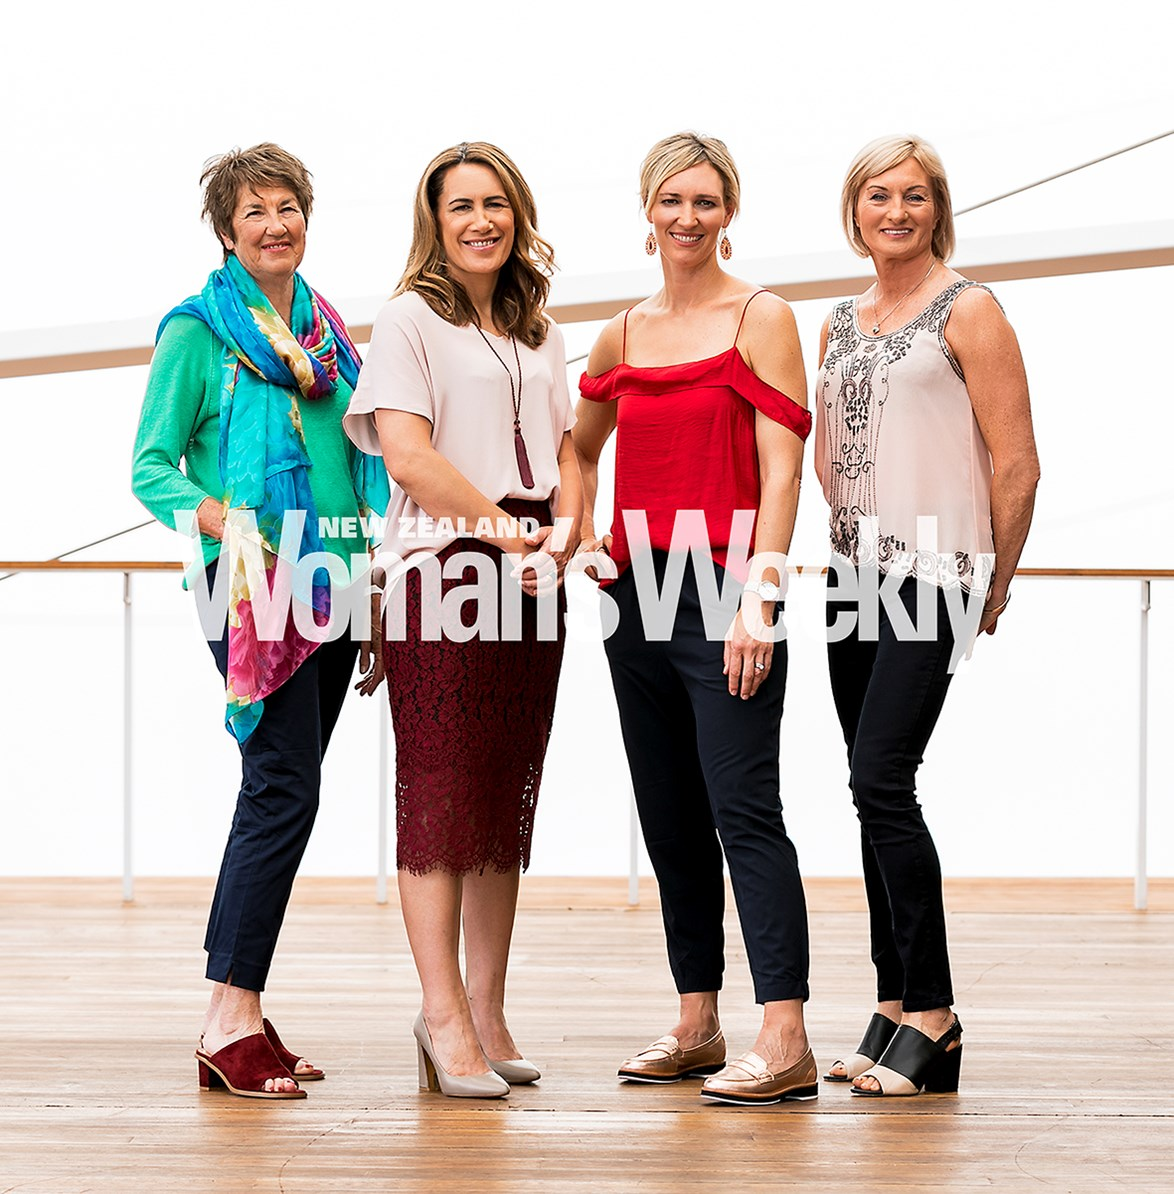 """**Nov 7, 2016** Recently, [the former netball-star](http://www.womensweekly.co.nz/latest/celebrity/jenny-may-clarkson-needs-a-helping-hand-for-scary-challenge-21178